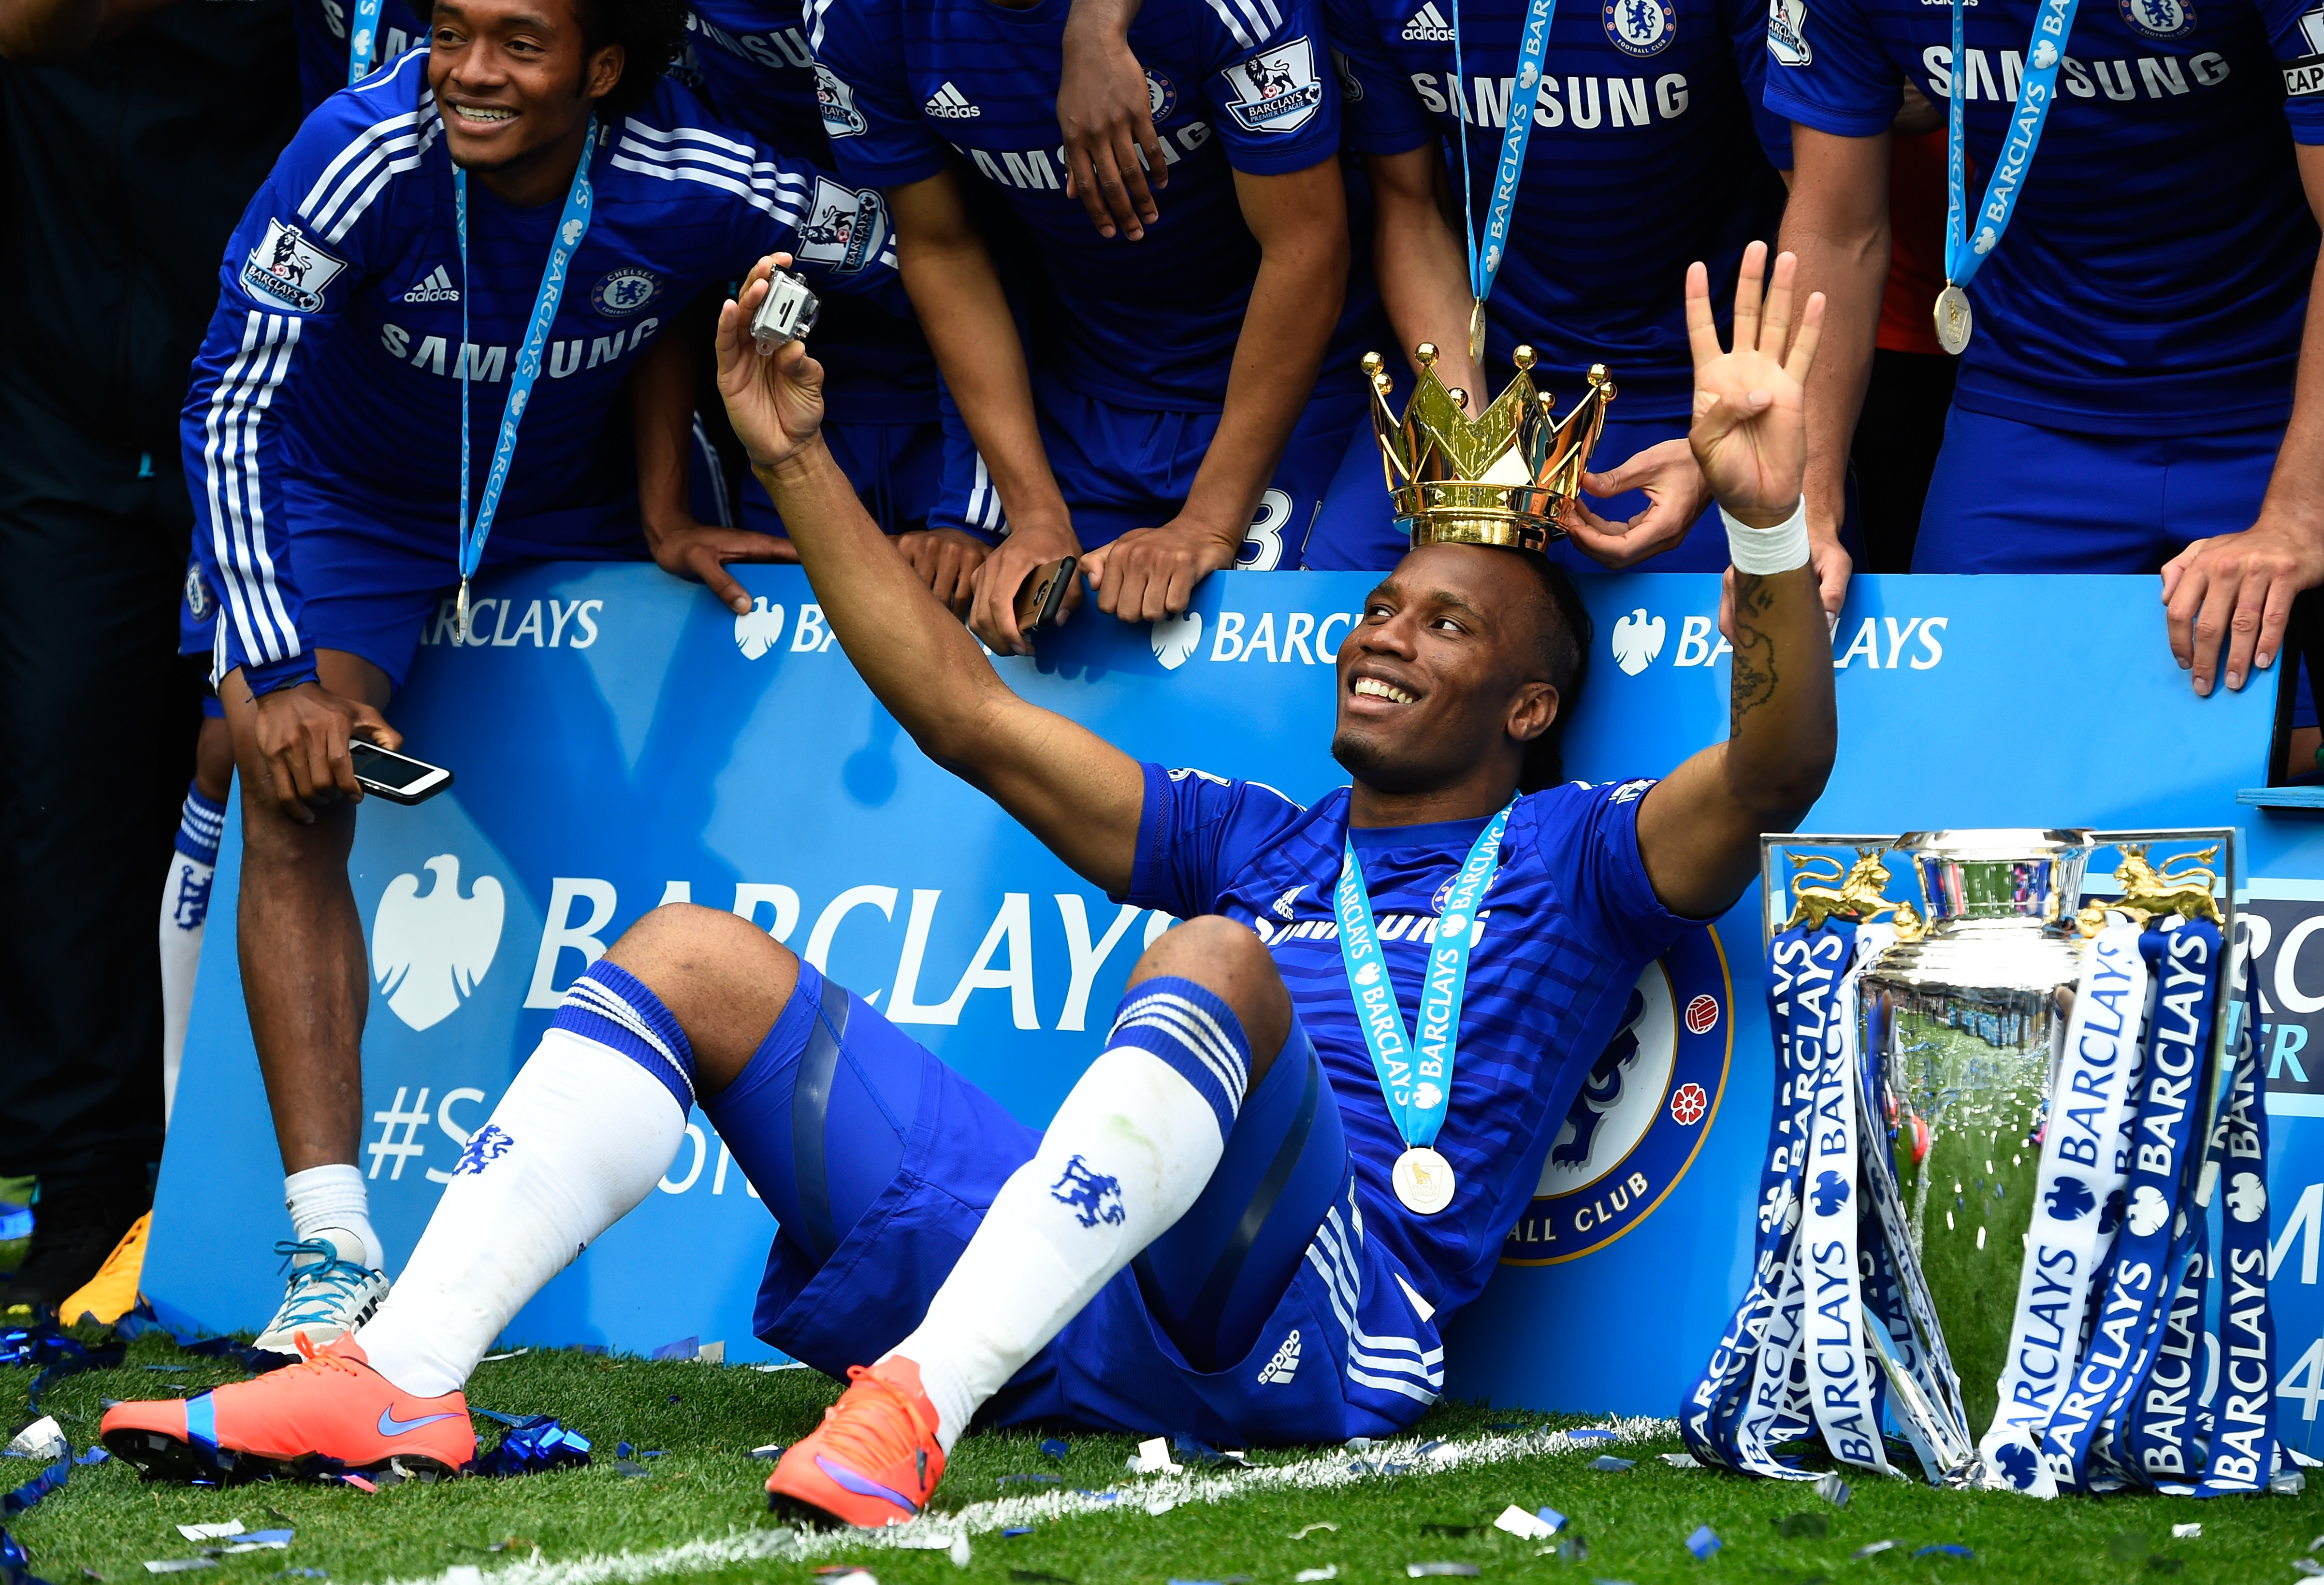 LONDON, ENGLAND - MAY 24:  Didier Drogba of Chelsea celebrates with team mates and the trophy  after the Barclays Premier League match between Chelsea and Sunderland at Stamford Bridge on May 24, 2015 in London, England. Chelsea were crowned Premier League champions.  (Photo by Mike Hewitt/Getty Images)